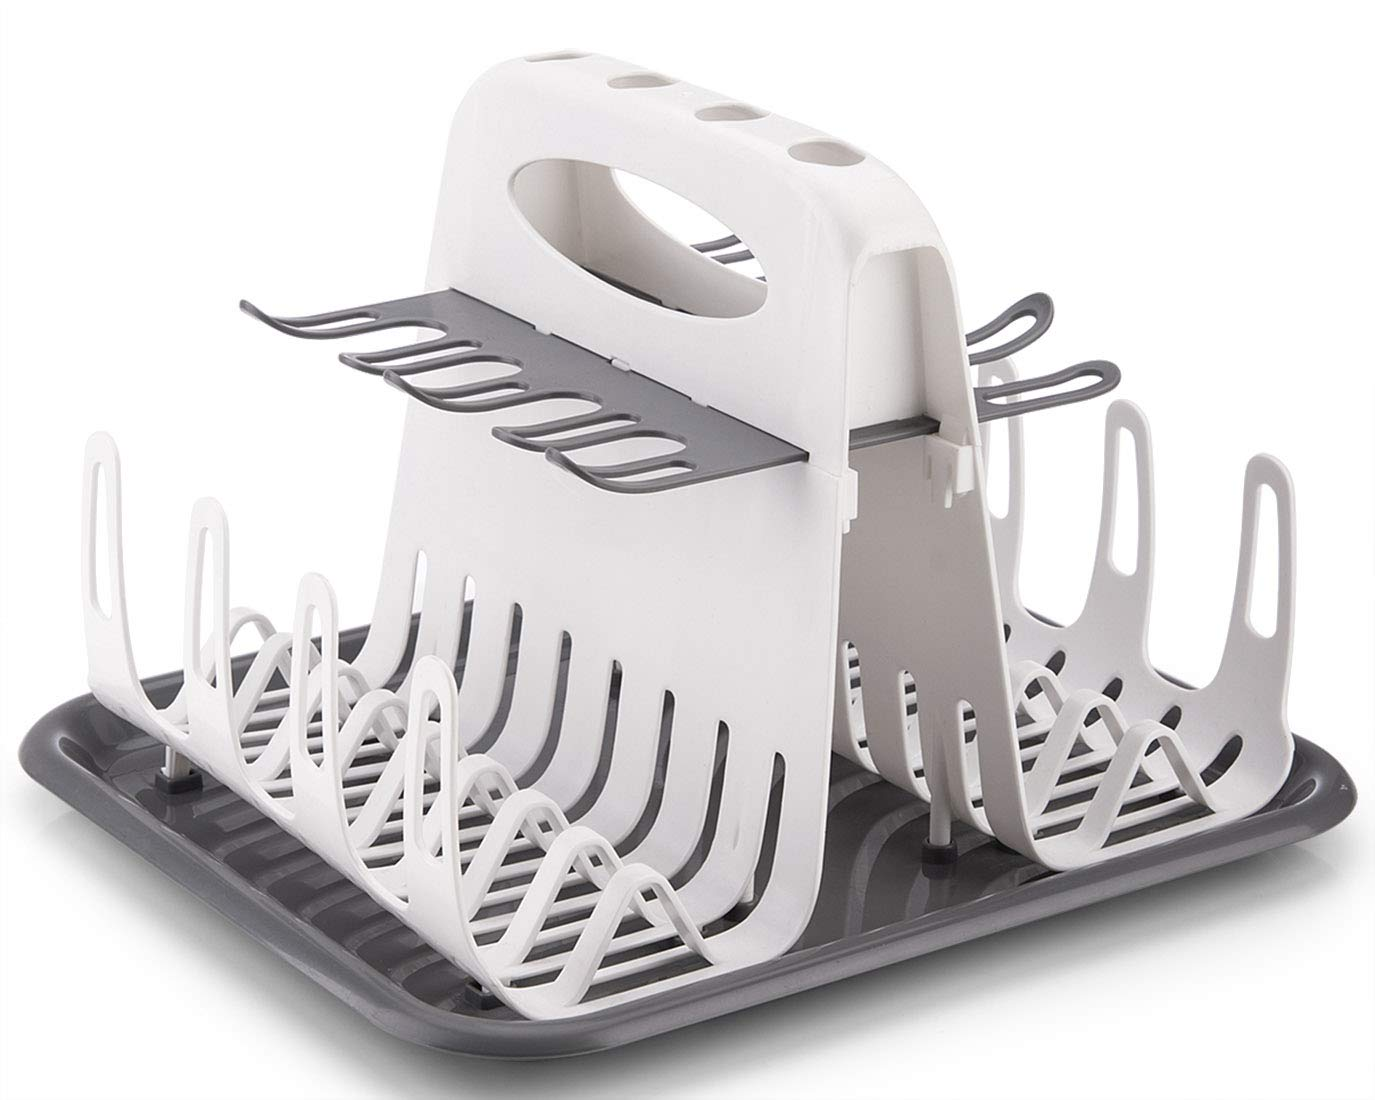 Folds Flat,White High Capacity Drying Rack with 6pcs Brushes,Deluxe Countertop Drying Rack,Universal Drying Station,Baby Bottle Drying Rack with Bottle Brushes,Cup and Bottle Drying Rack